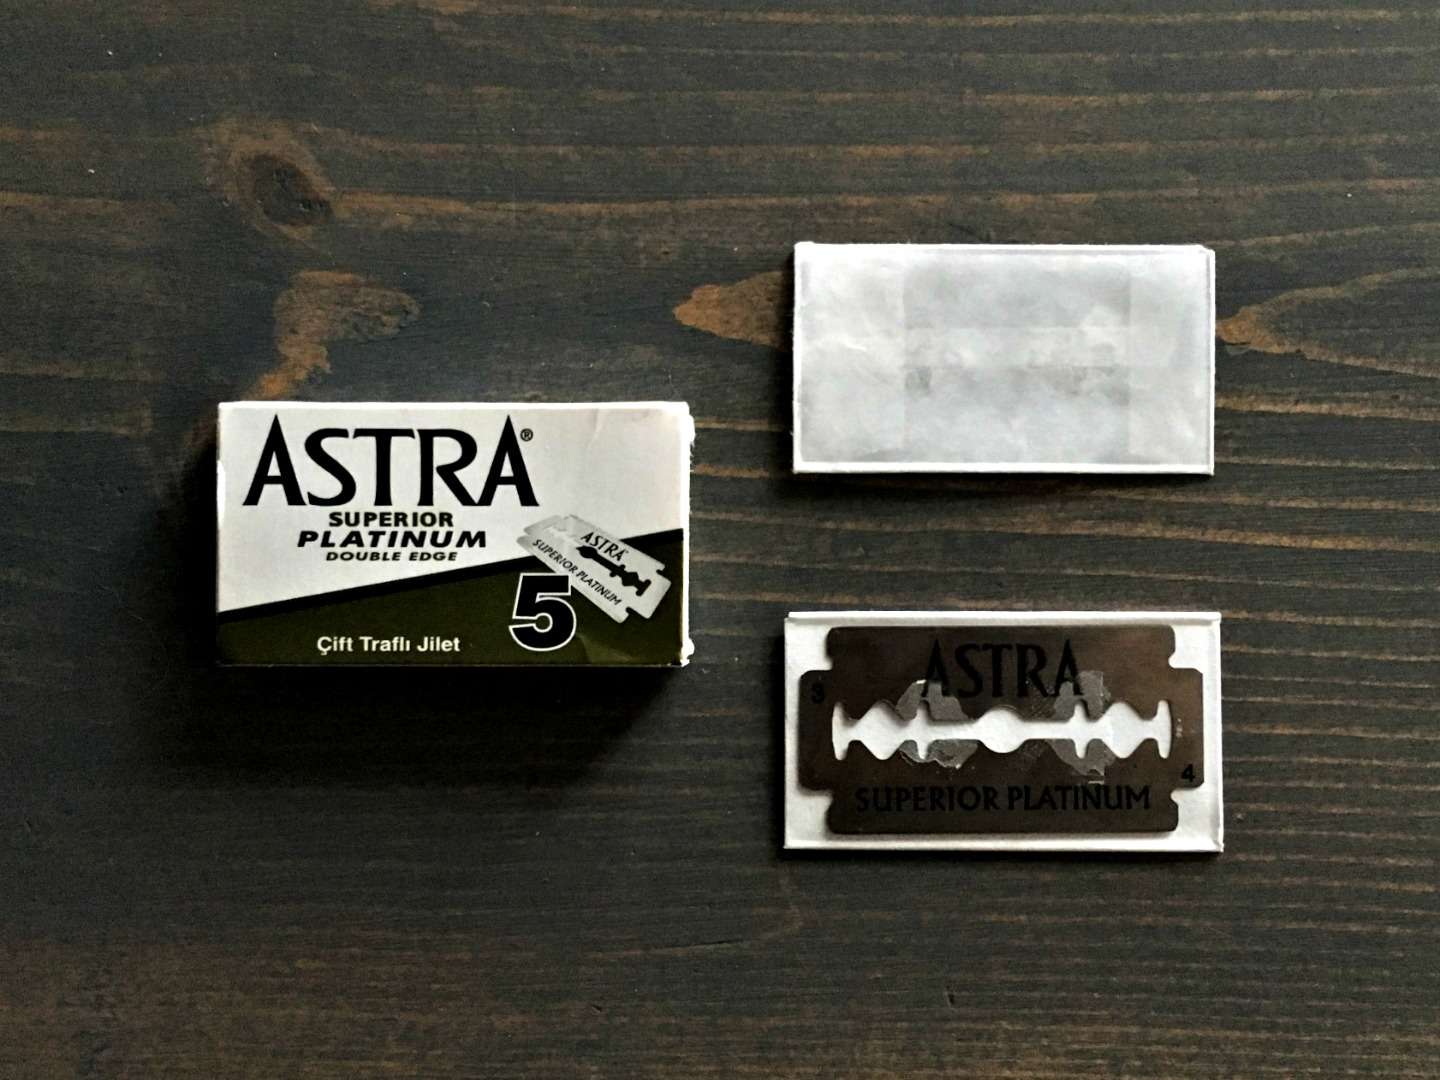 Astra Superior Platinum Razor Blade Review